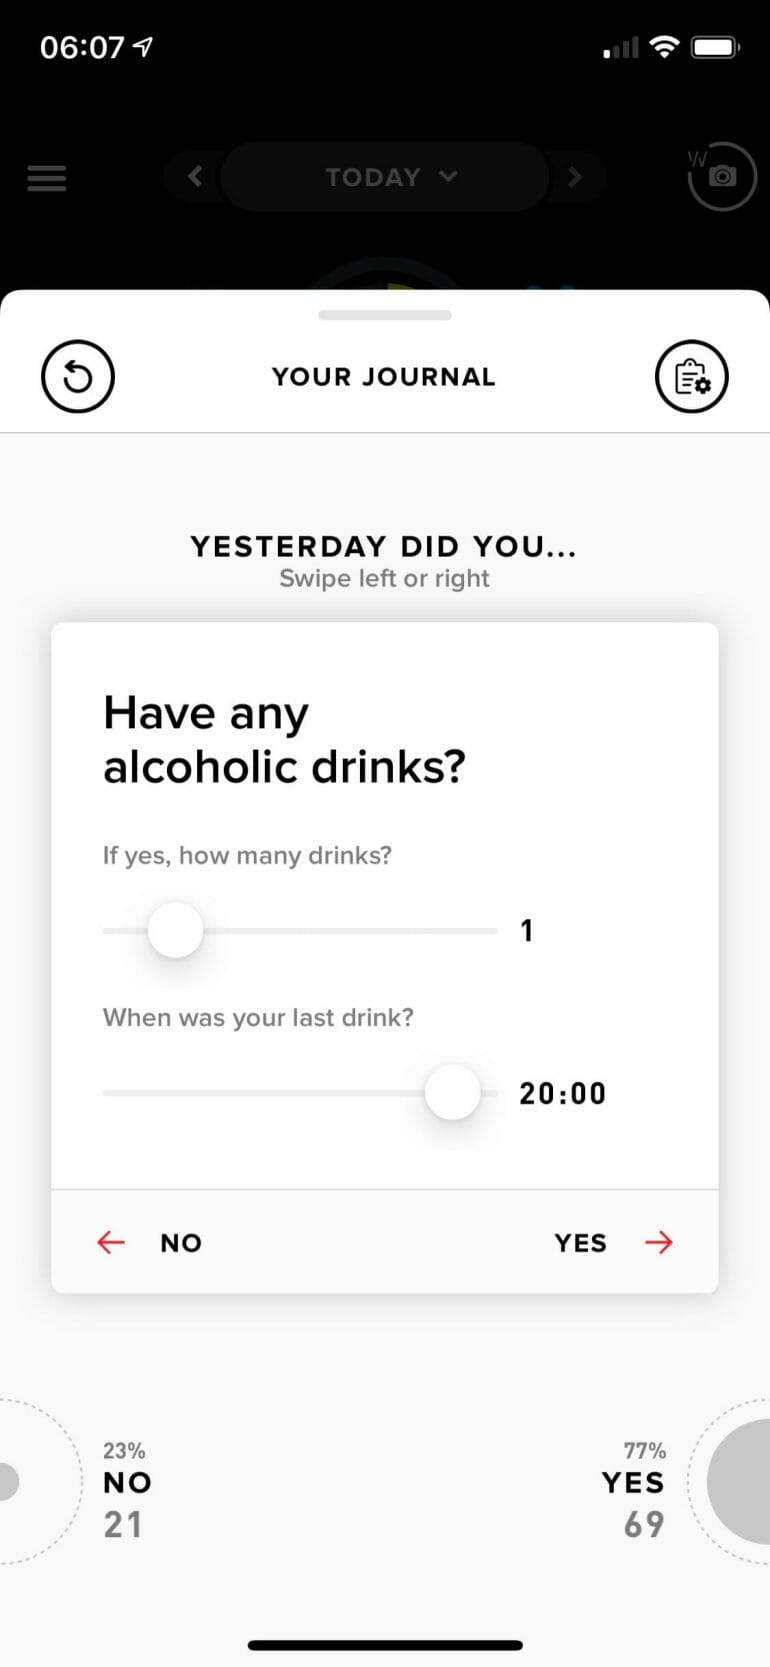 WHOOP Journal - Alcohol consumption